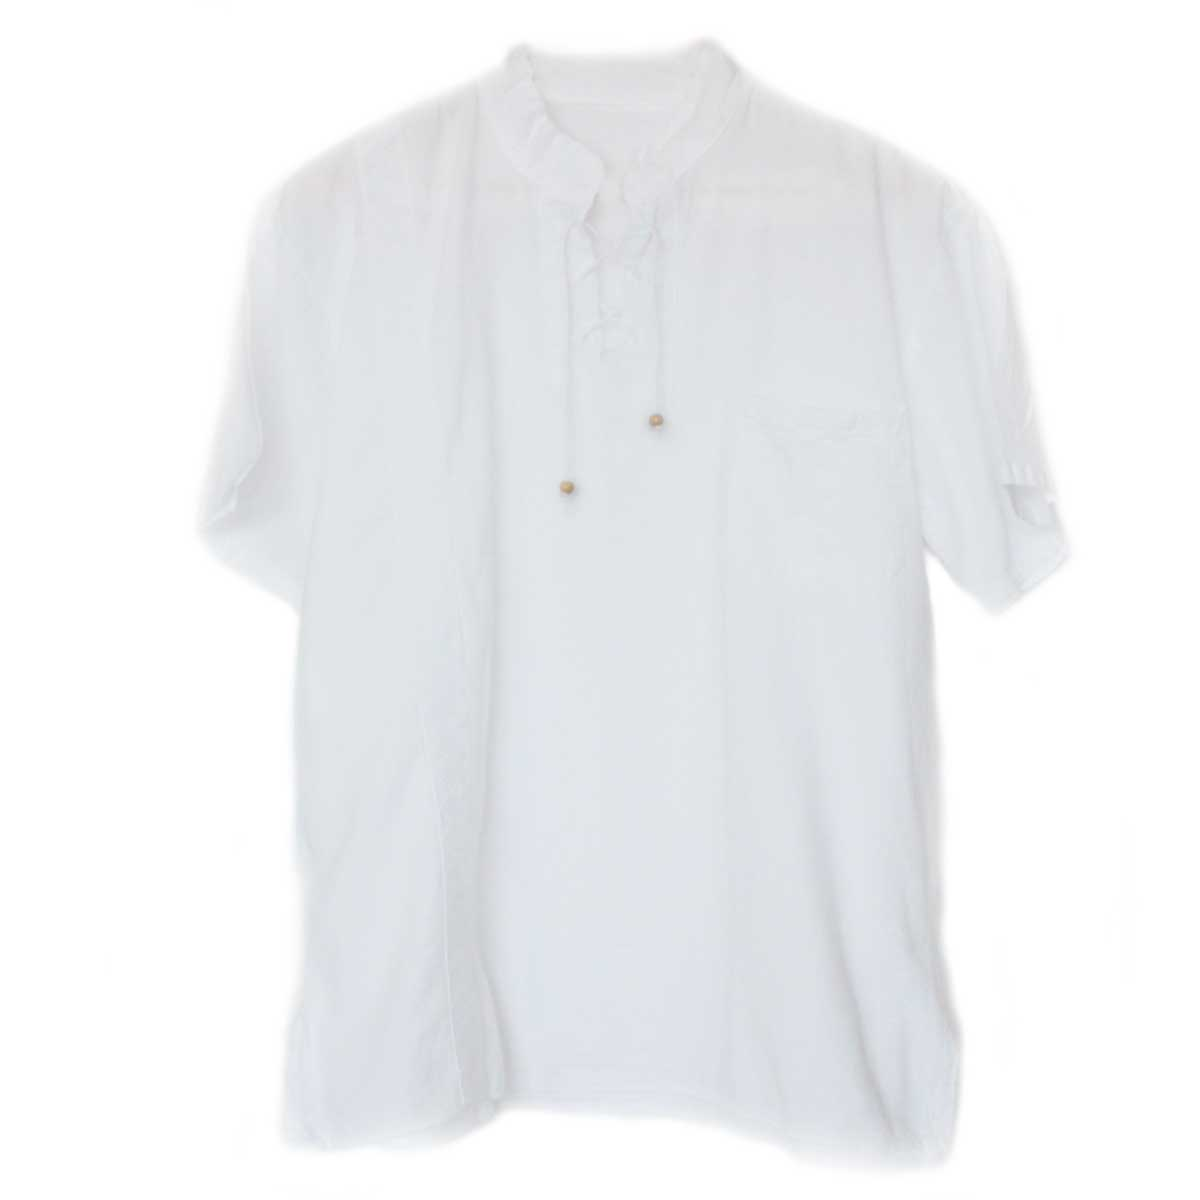 Inka-Products-Chemise Col Mao Homme-Coton Péruvien